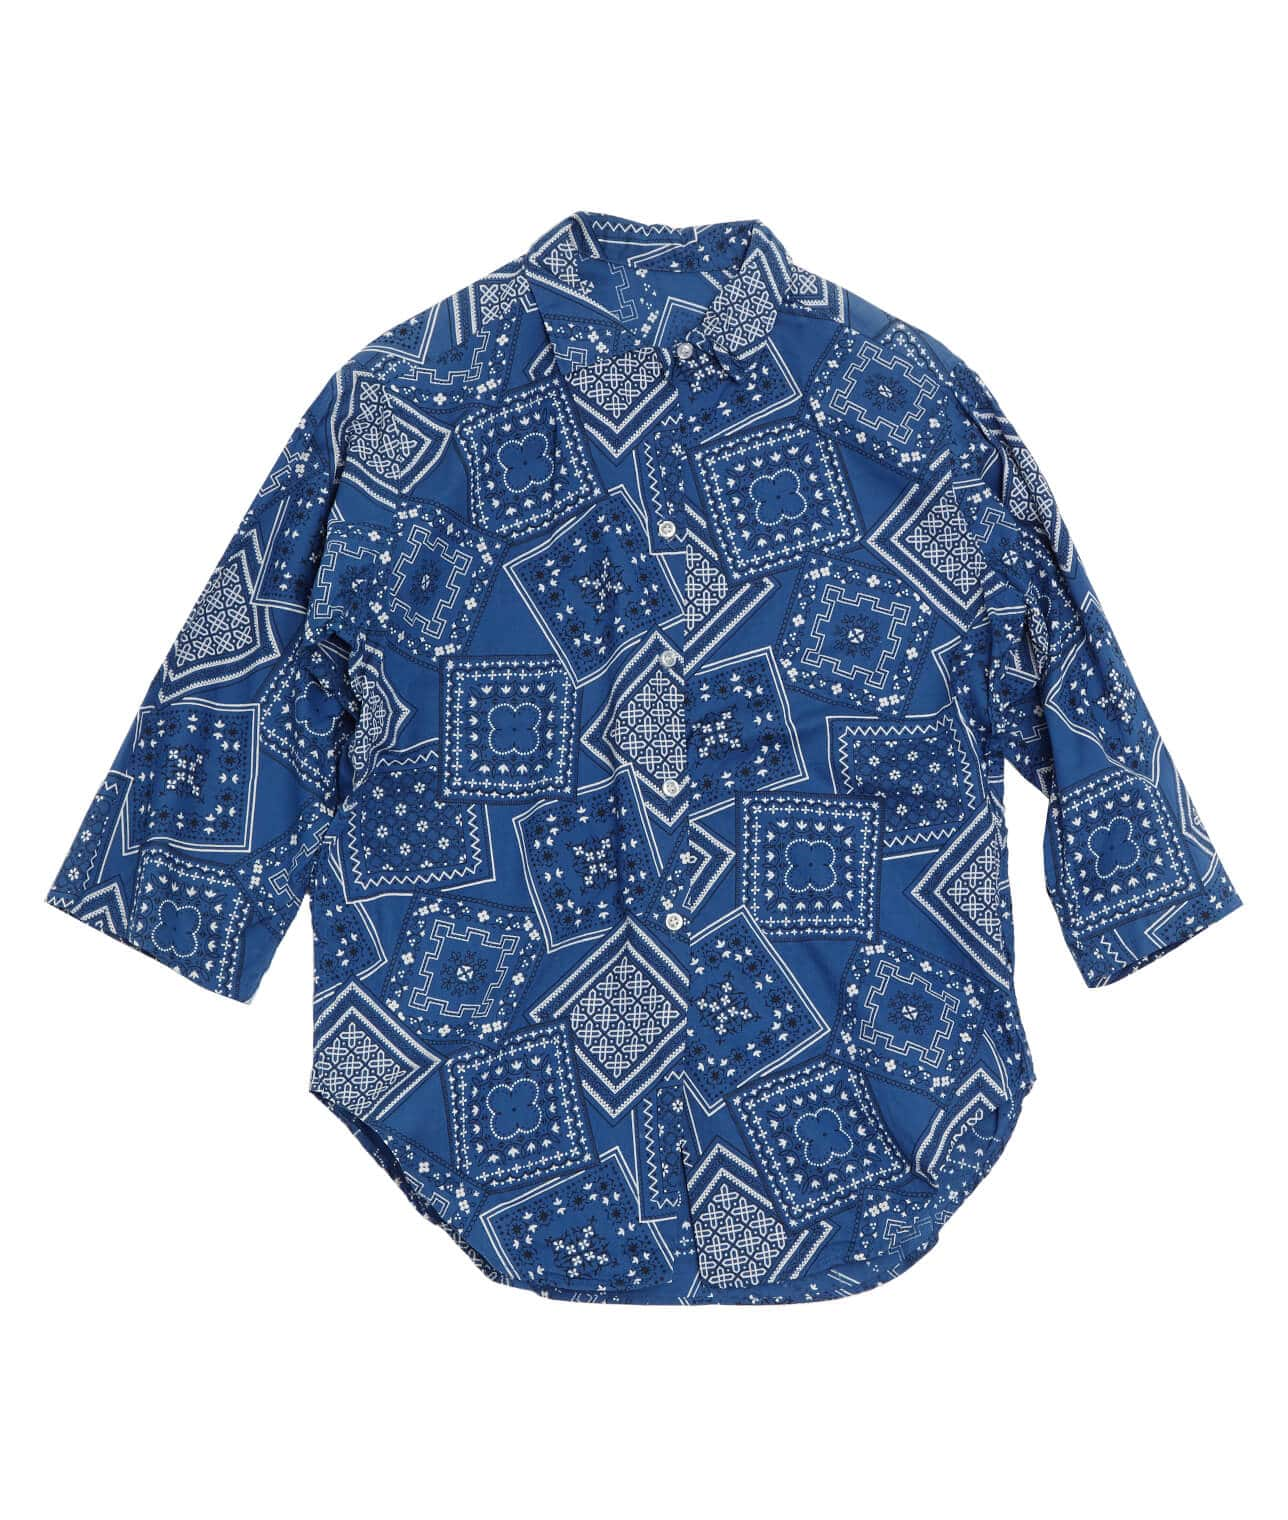 USED/BANDANA PATTERN ALL PRINT LOOP SHIRT  詳細画像 BLUE 1